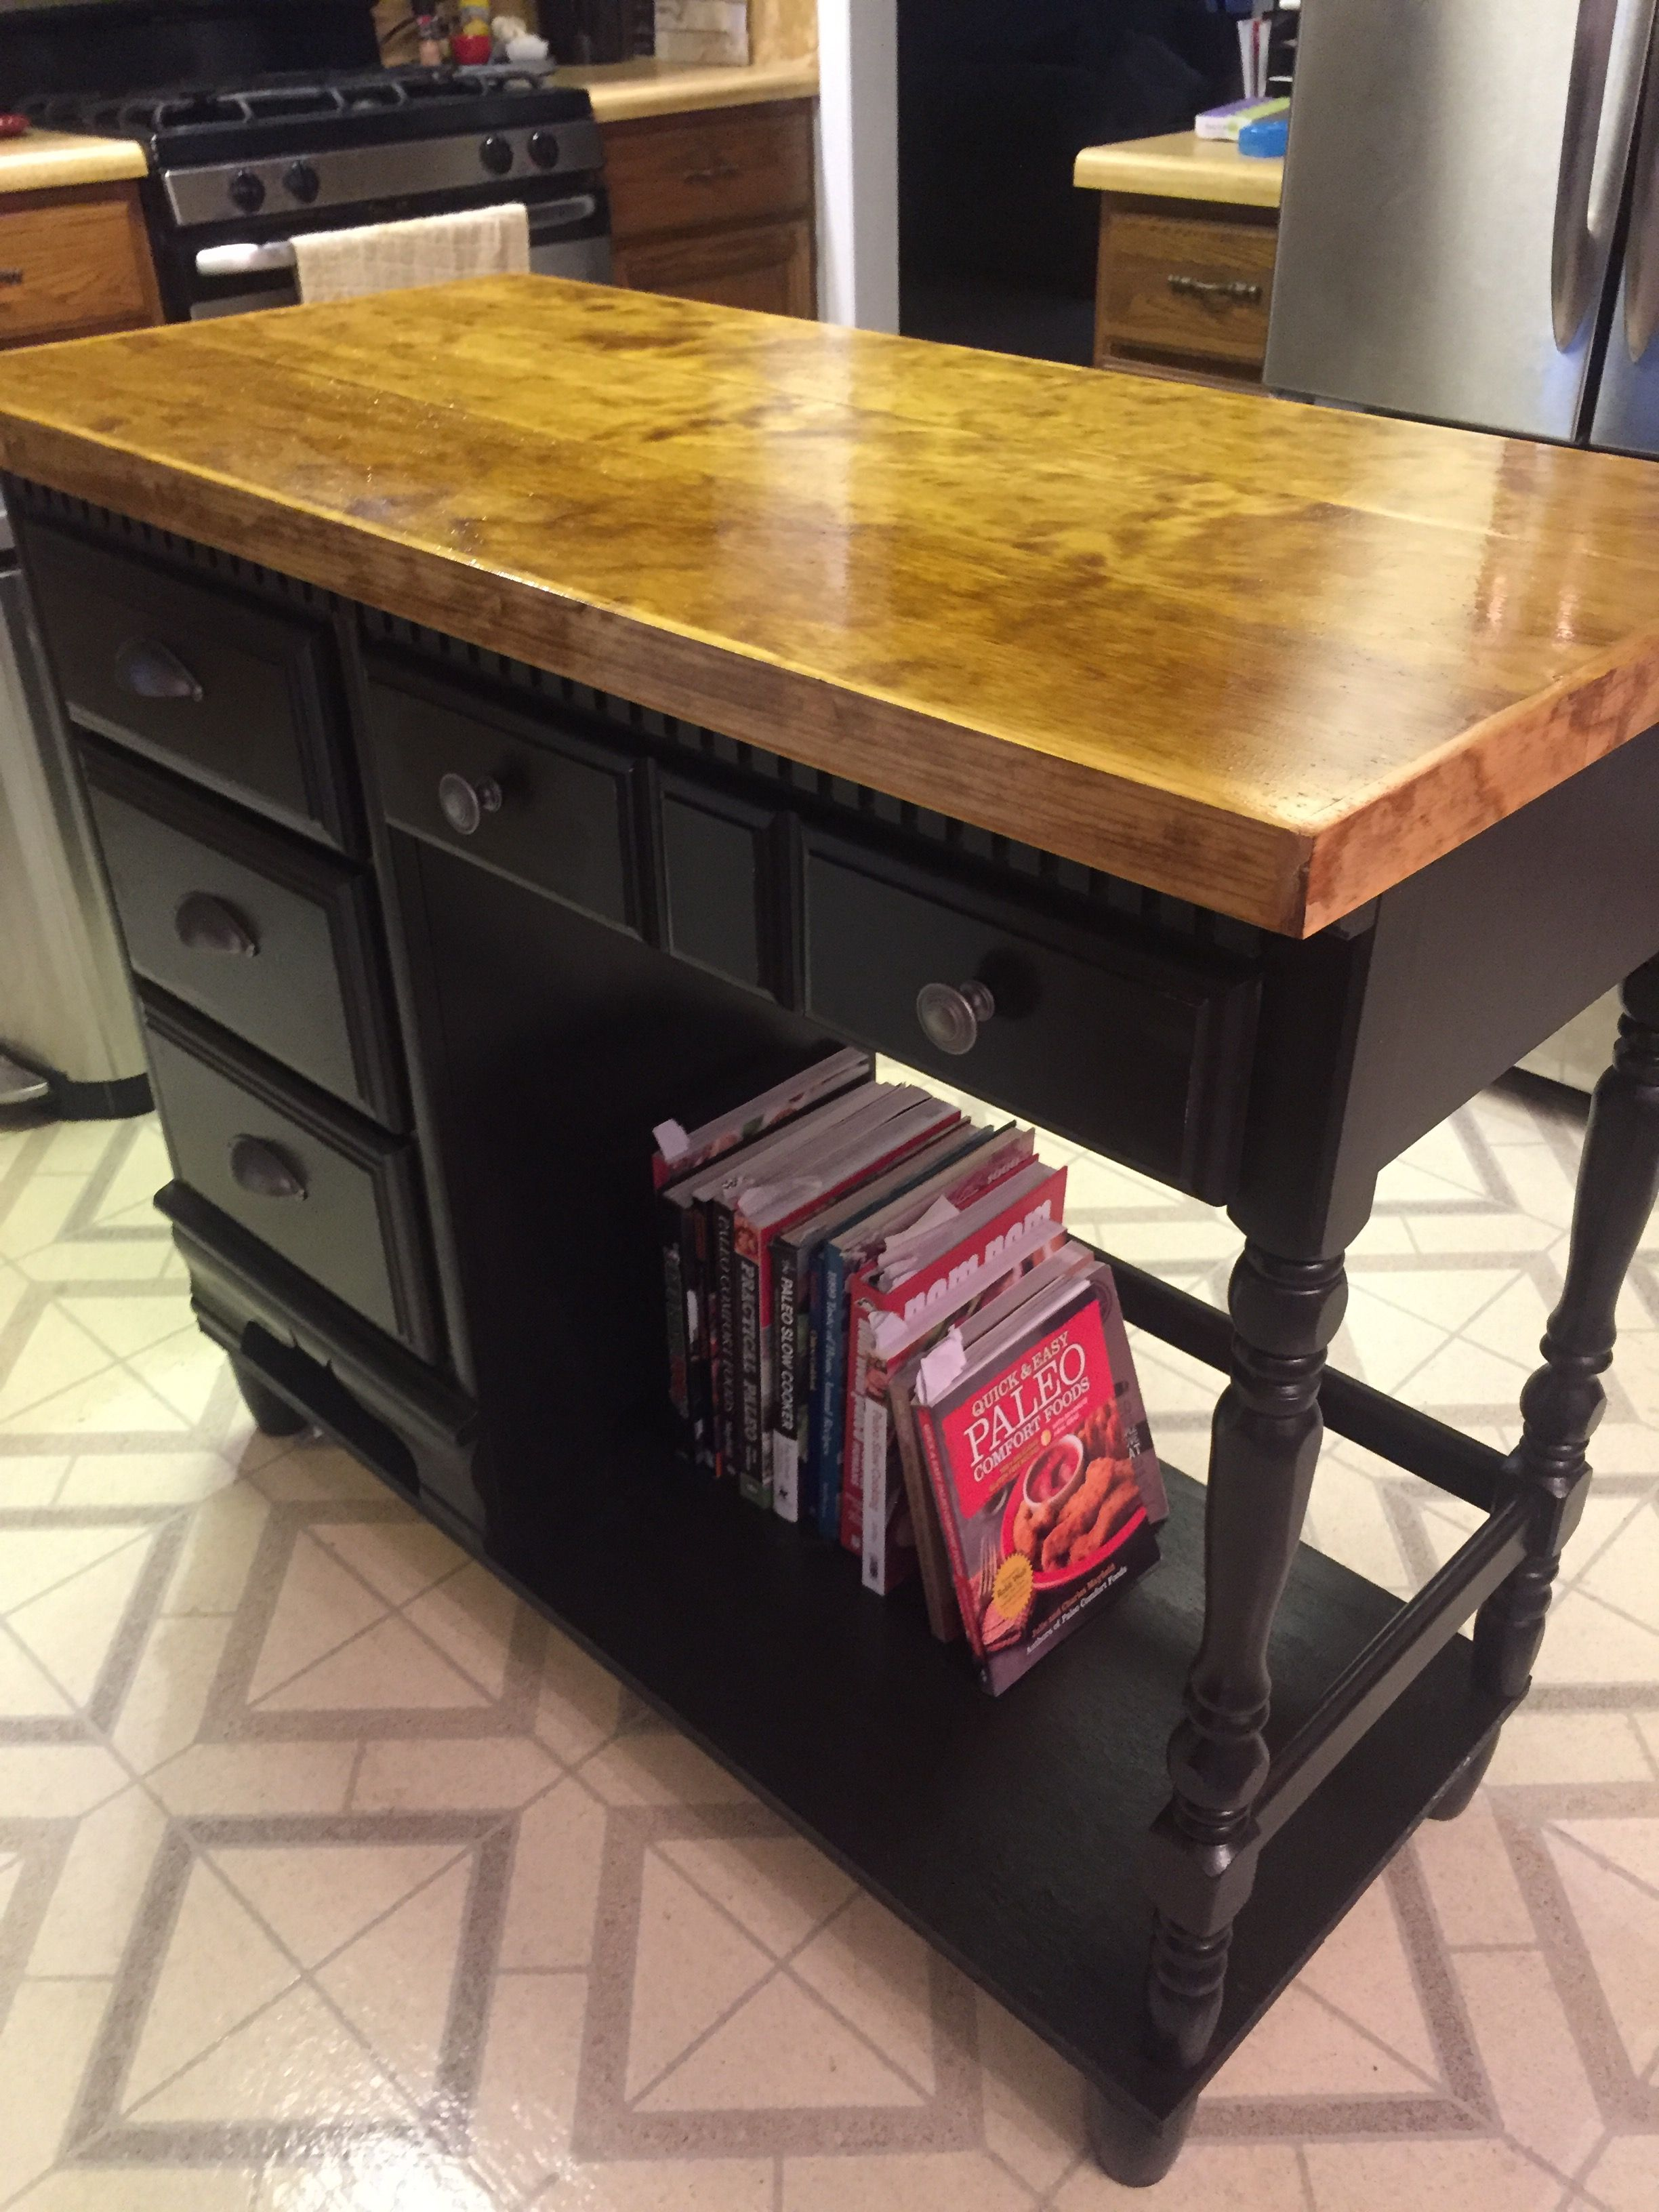 20 recommended small kitchen island ideas on a budget portable kitchen island kitchen island on kitchen island ideas in small kitchen id=70340